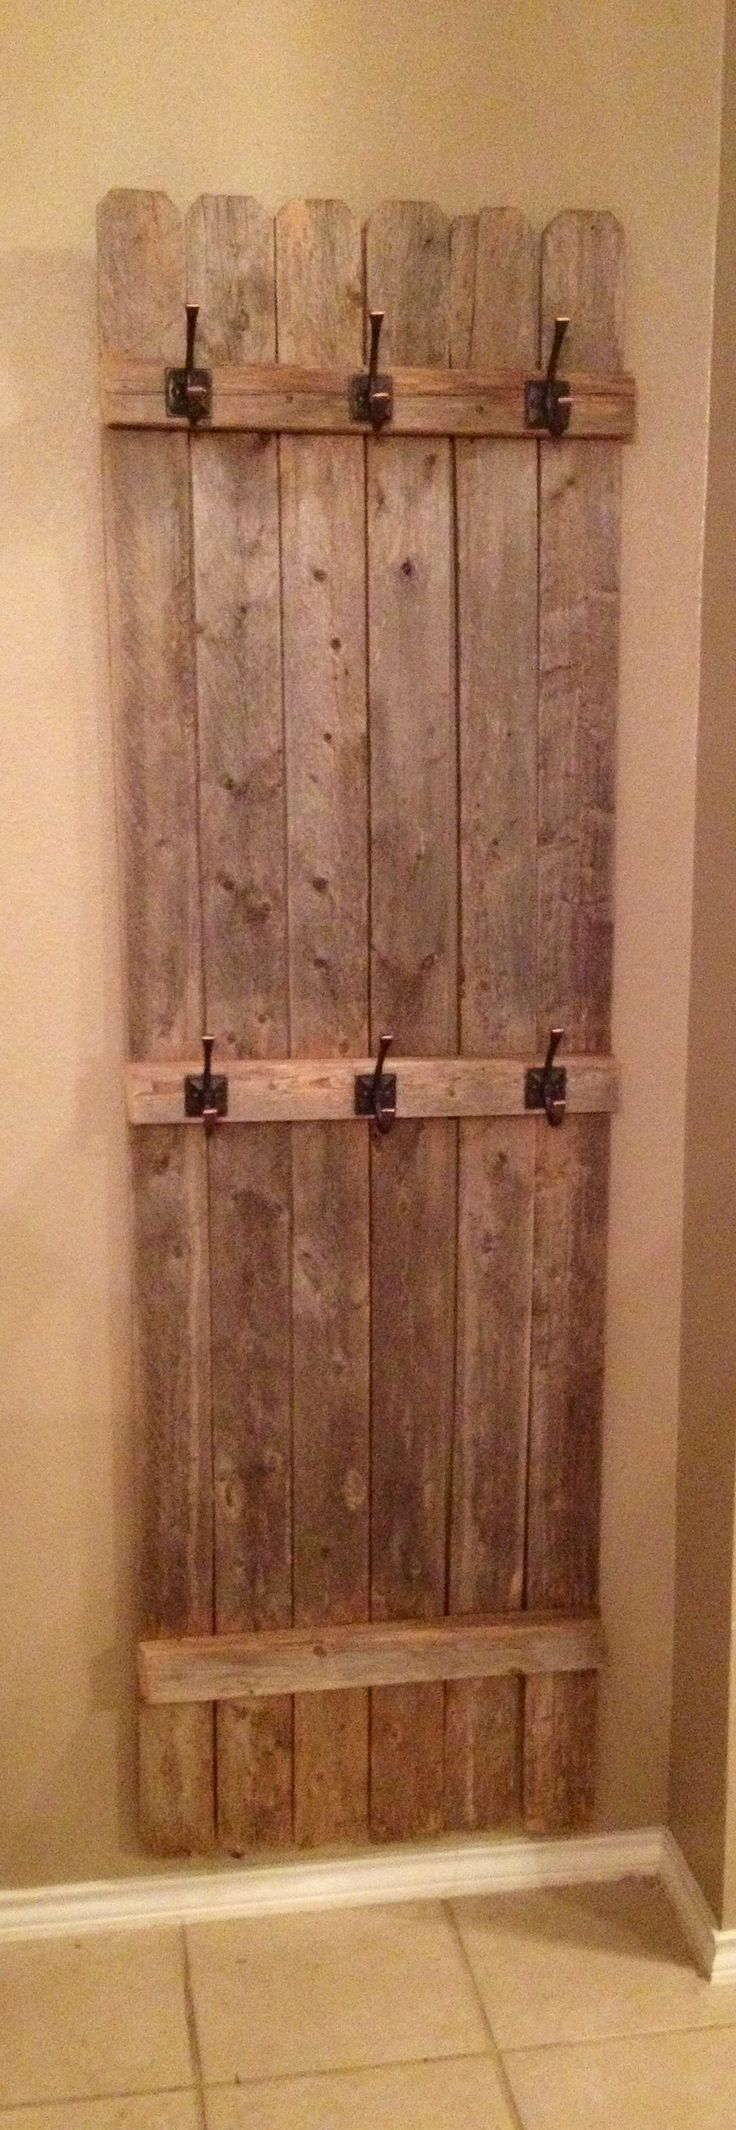 Best 25 fence panels ideas only on pinterest front yard fence old fence panel turned coat rack baanklon Gallery